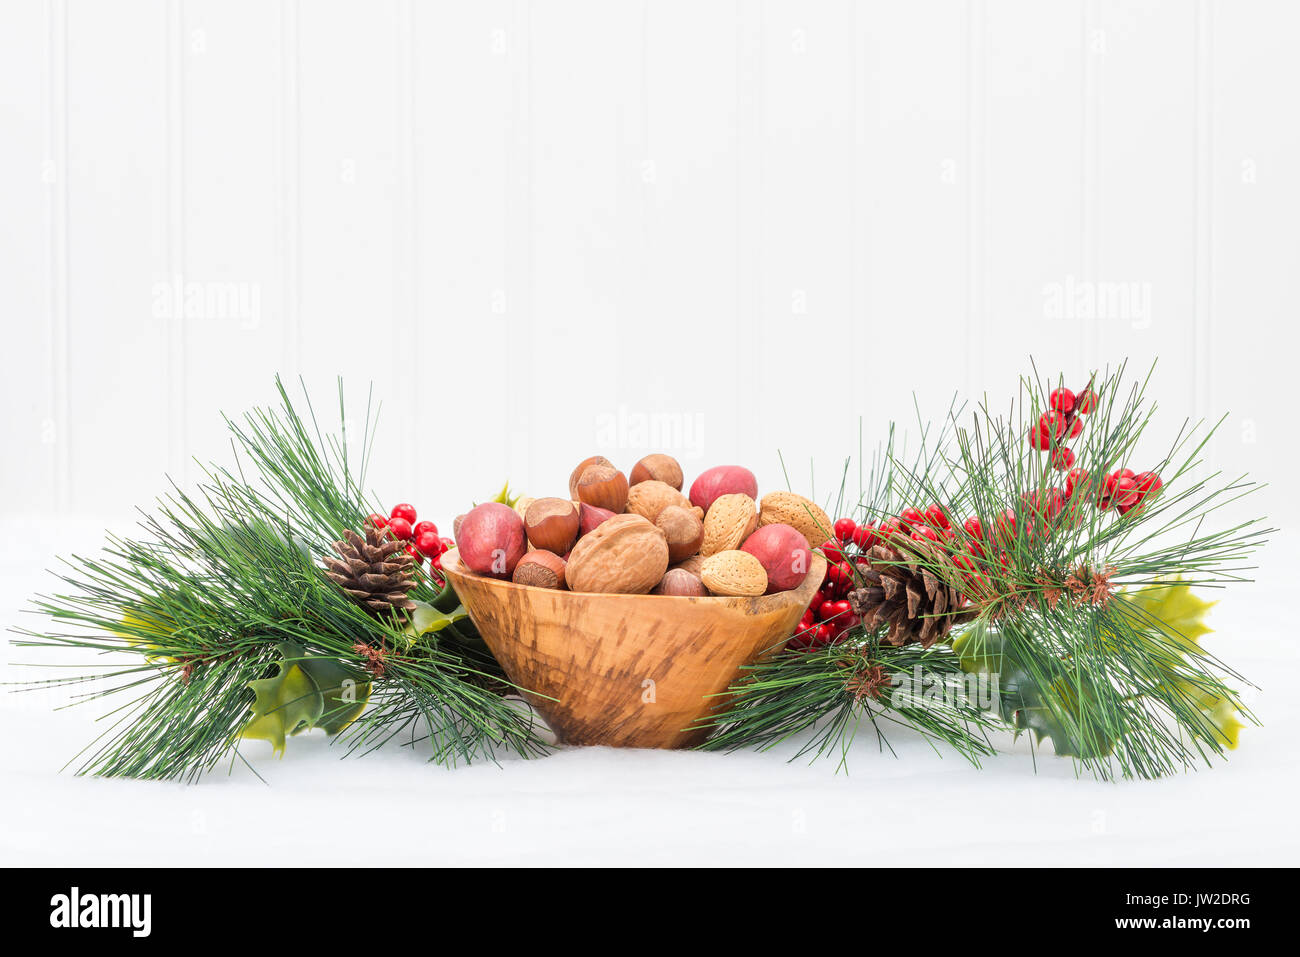 Wooden bowl of mixed nuts surrounded by a festive garland. - Stock Image